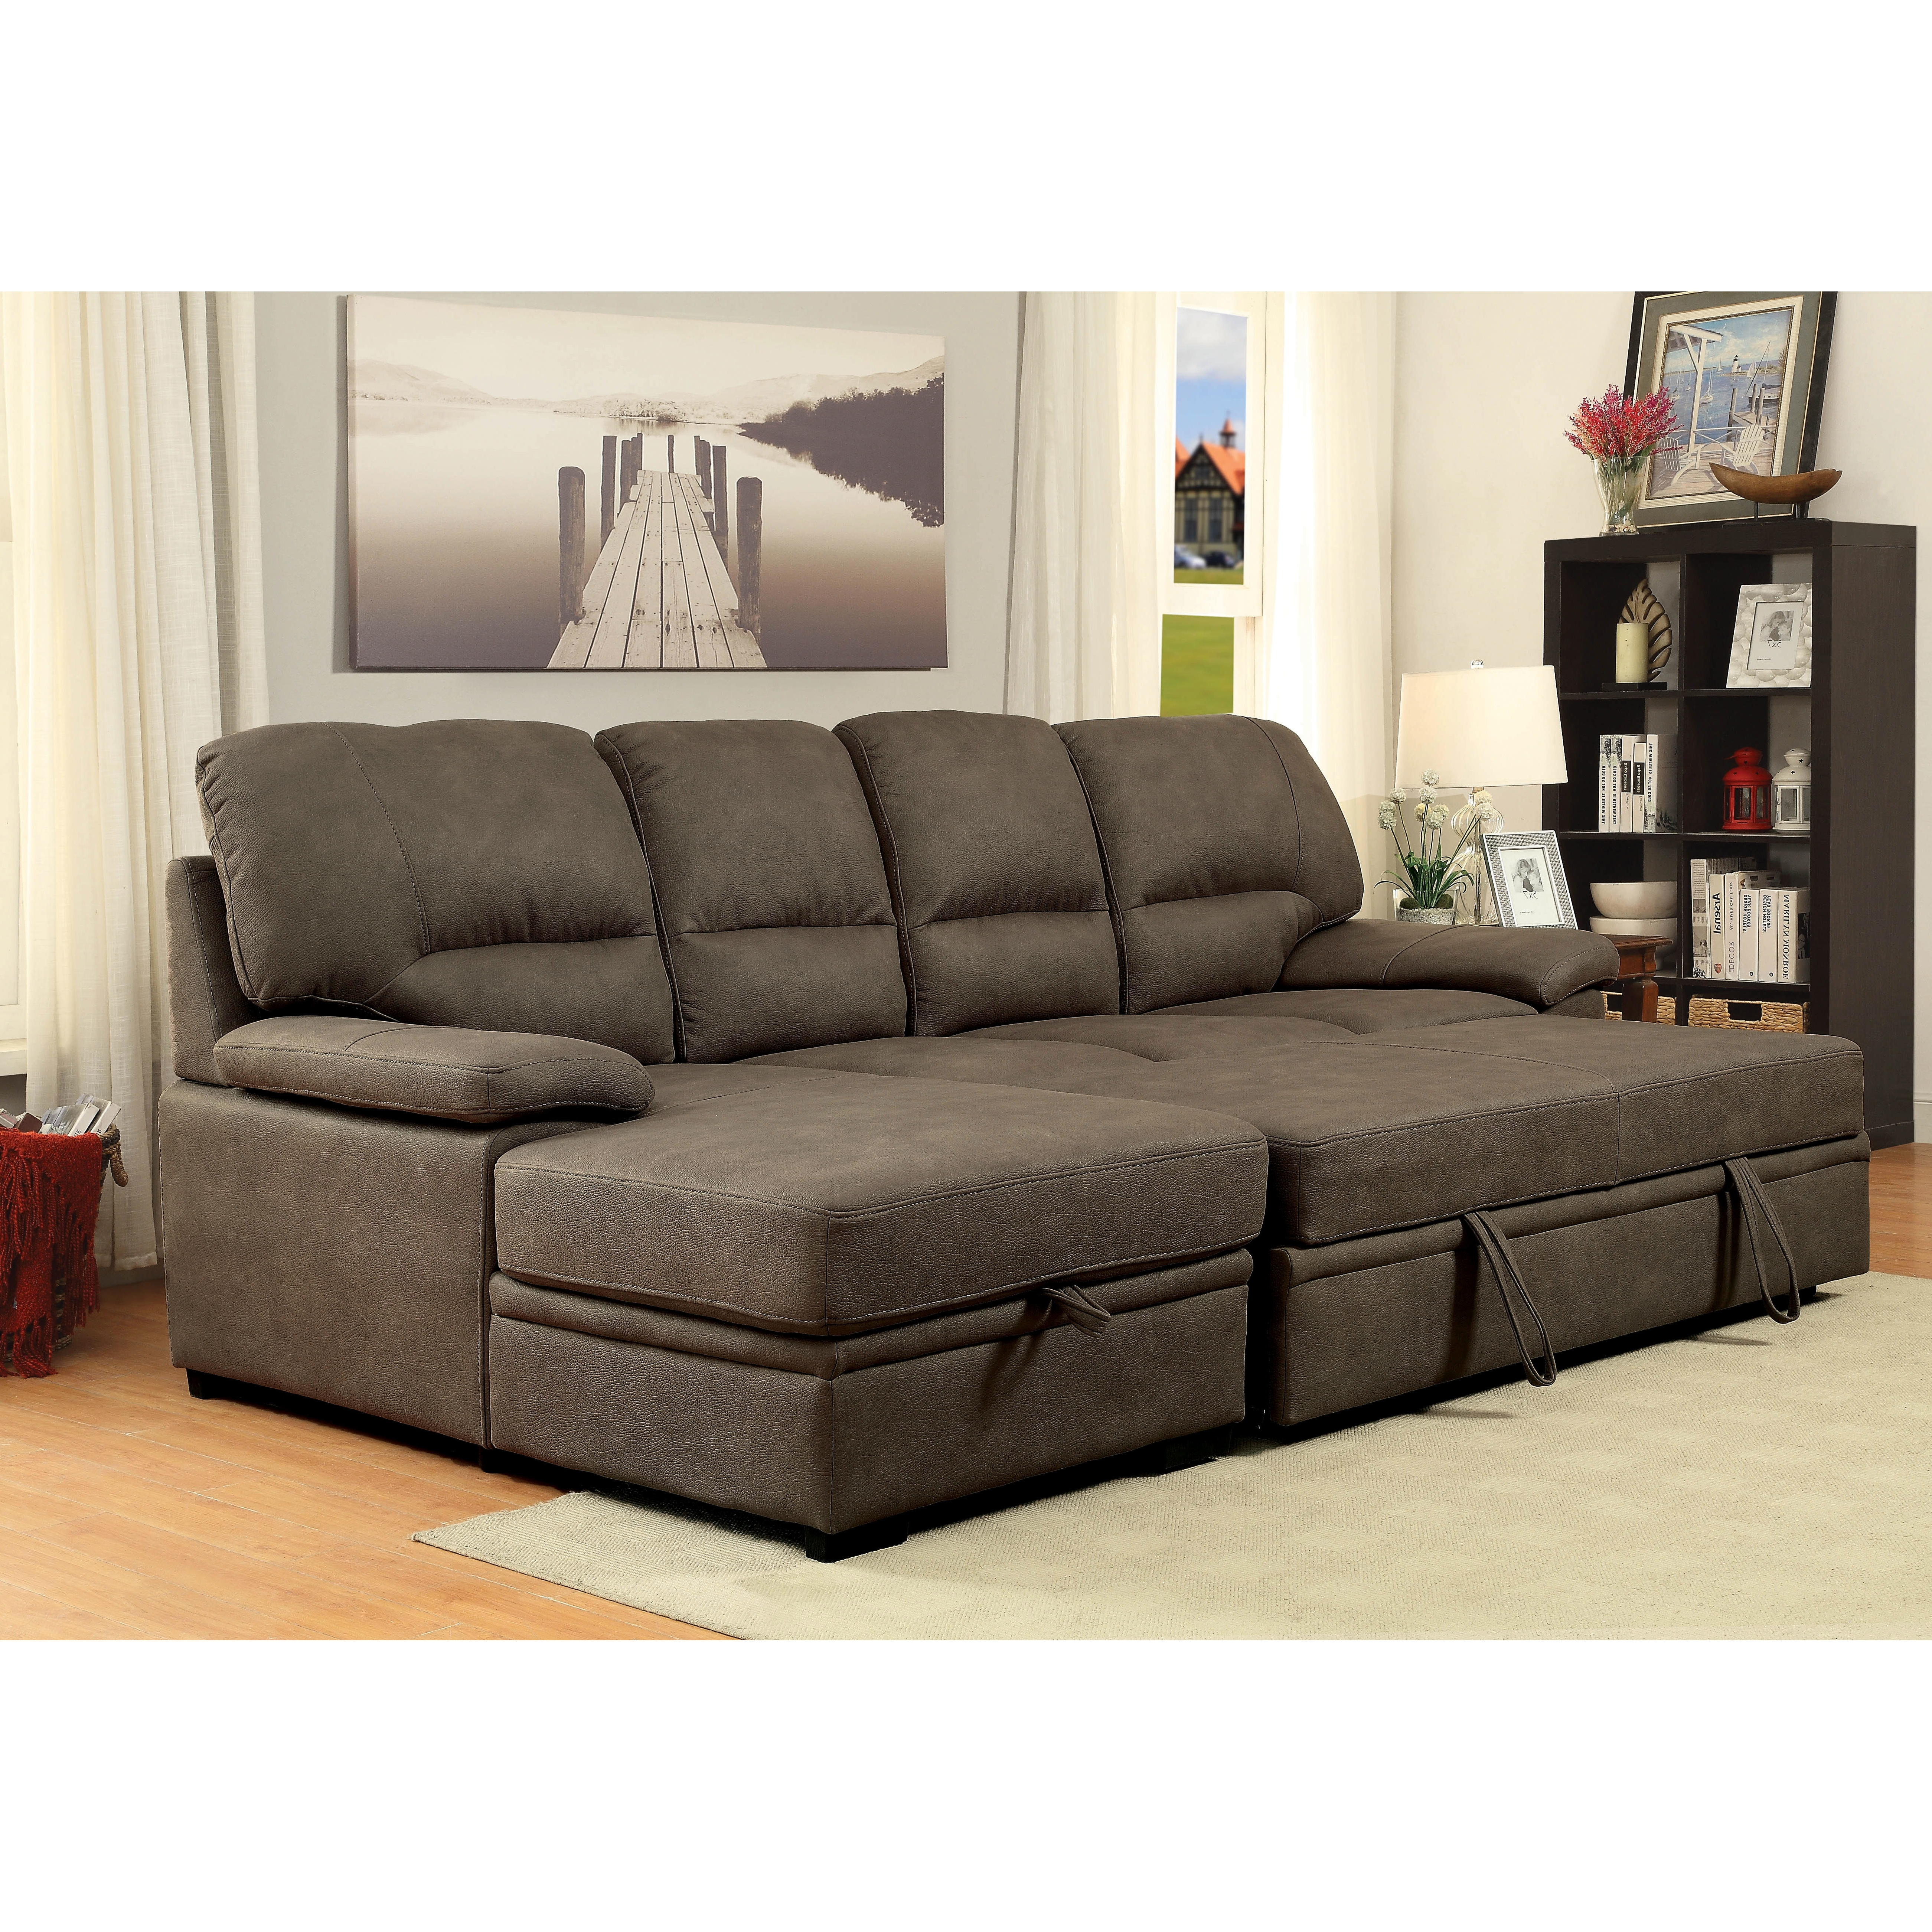 Well Known Sleeper Sectional Sofas For Attractive Sofa Sleeper Sectionals Coolest Home Design Ideas With (View 14 of 15)